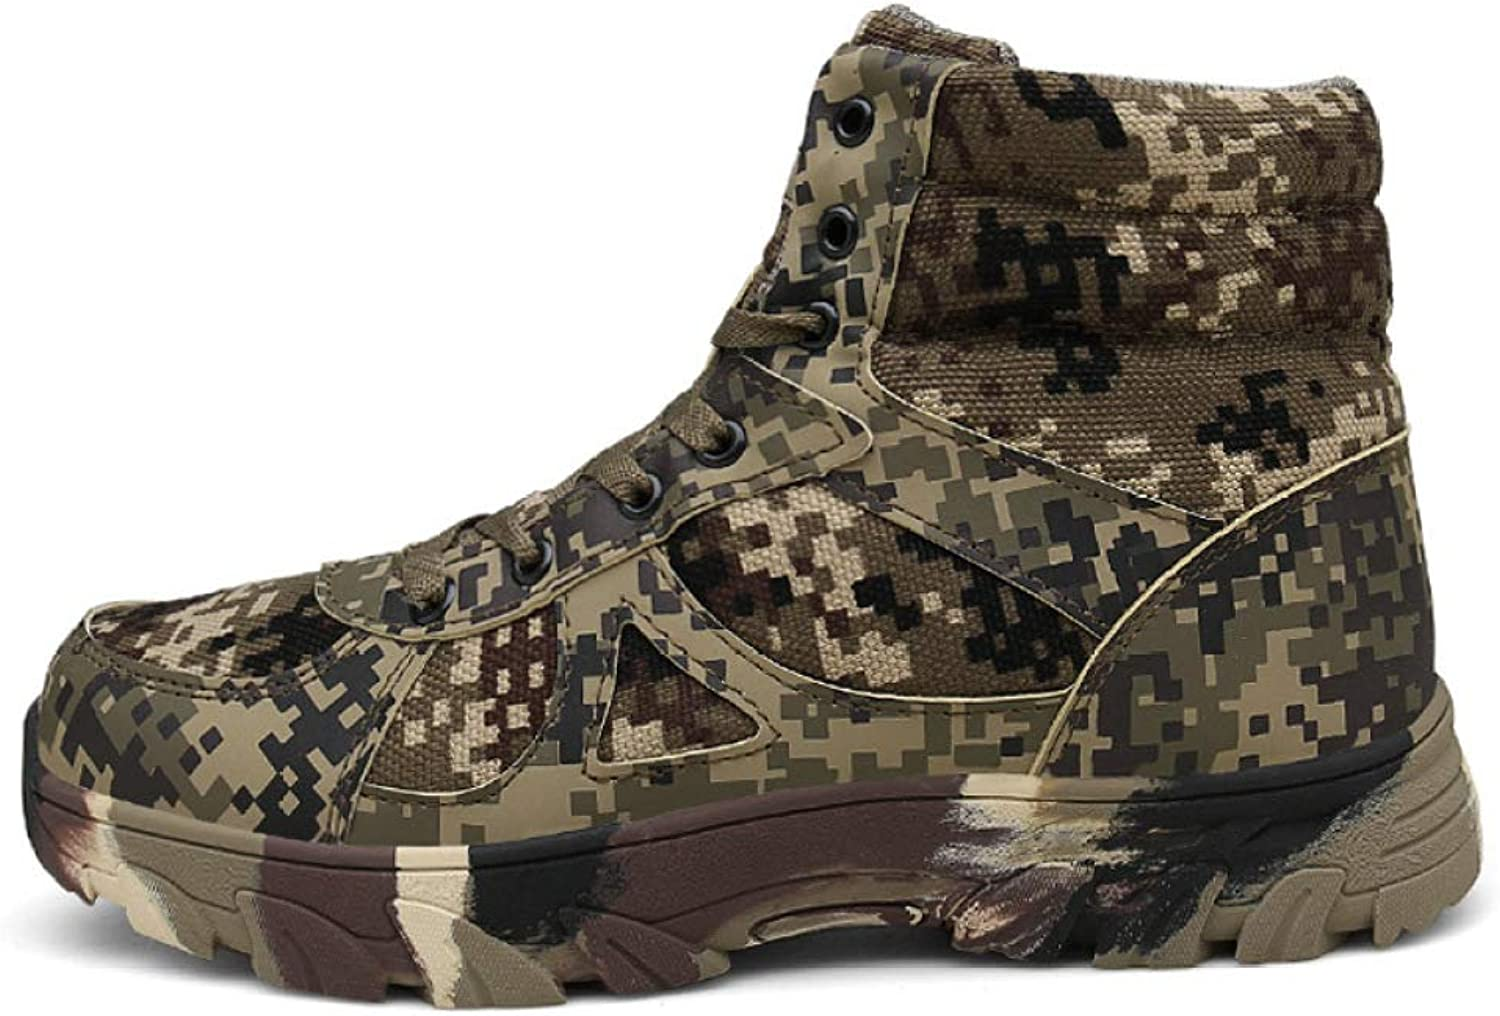 QIKAI Tactical Boots Zip Plus Cashmere Boots Large Size Camouflage Desert Boots Special Forces Warm Military Boots